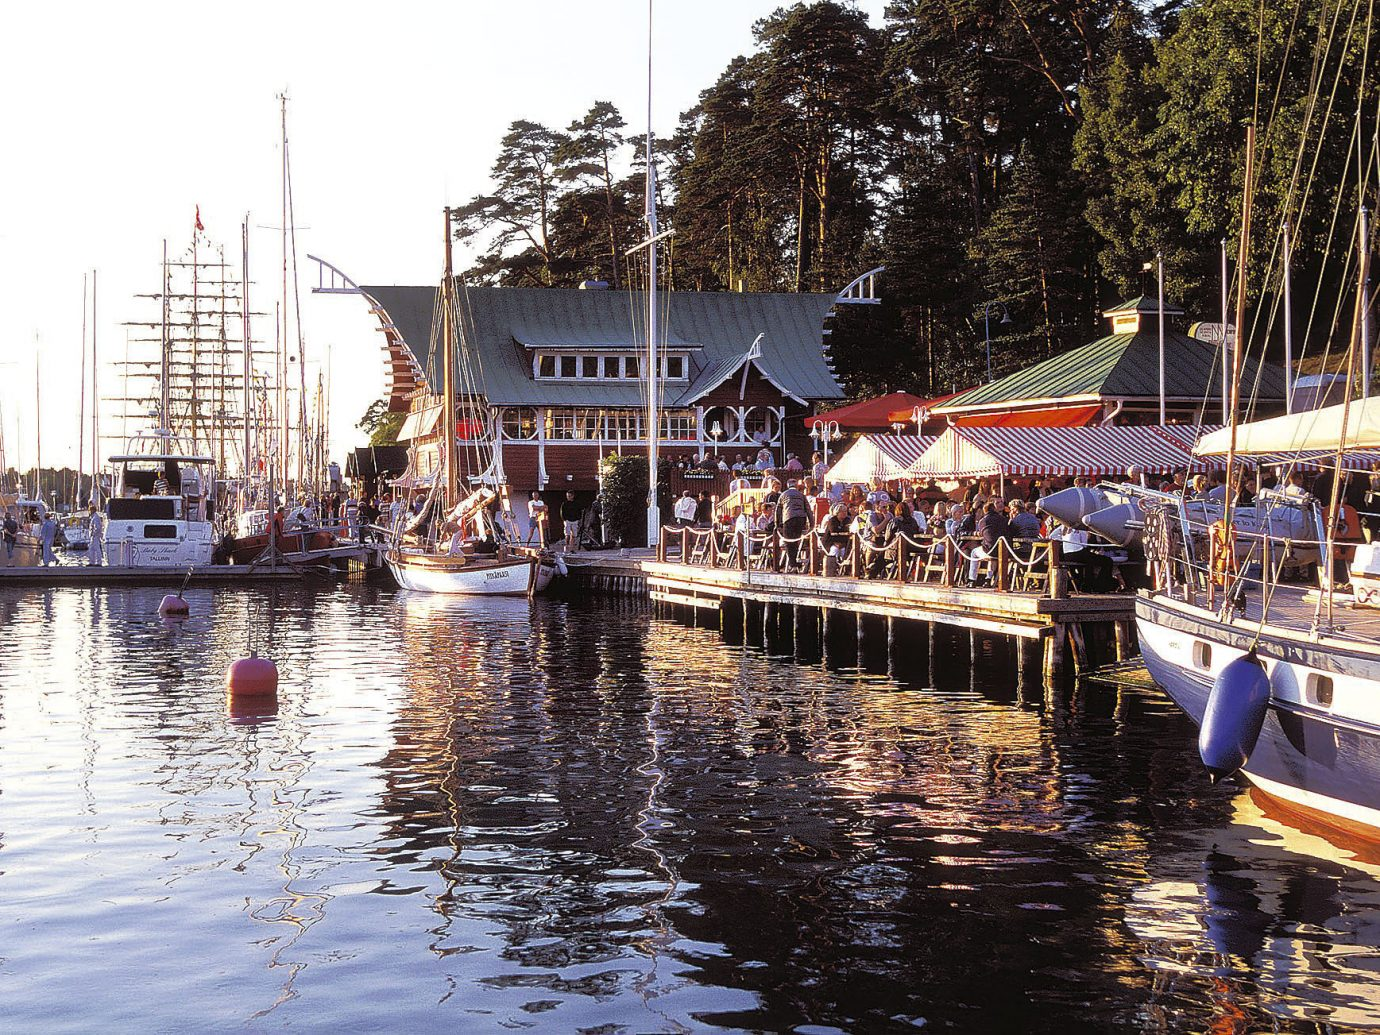 Finland Trip Ideas outdoor Boat sky water Town vehicle waterway Harbor Canal marina dock tourism boating River docked watercraft several